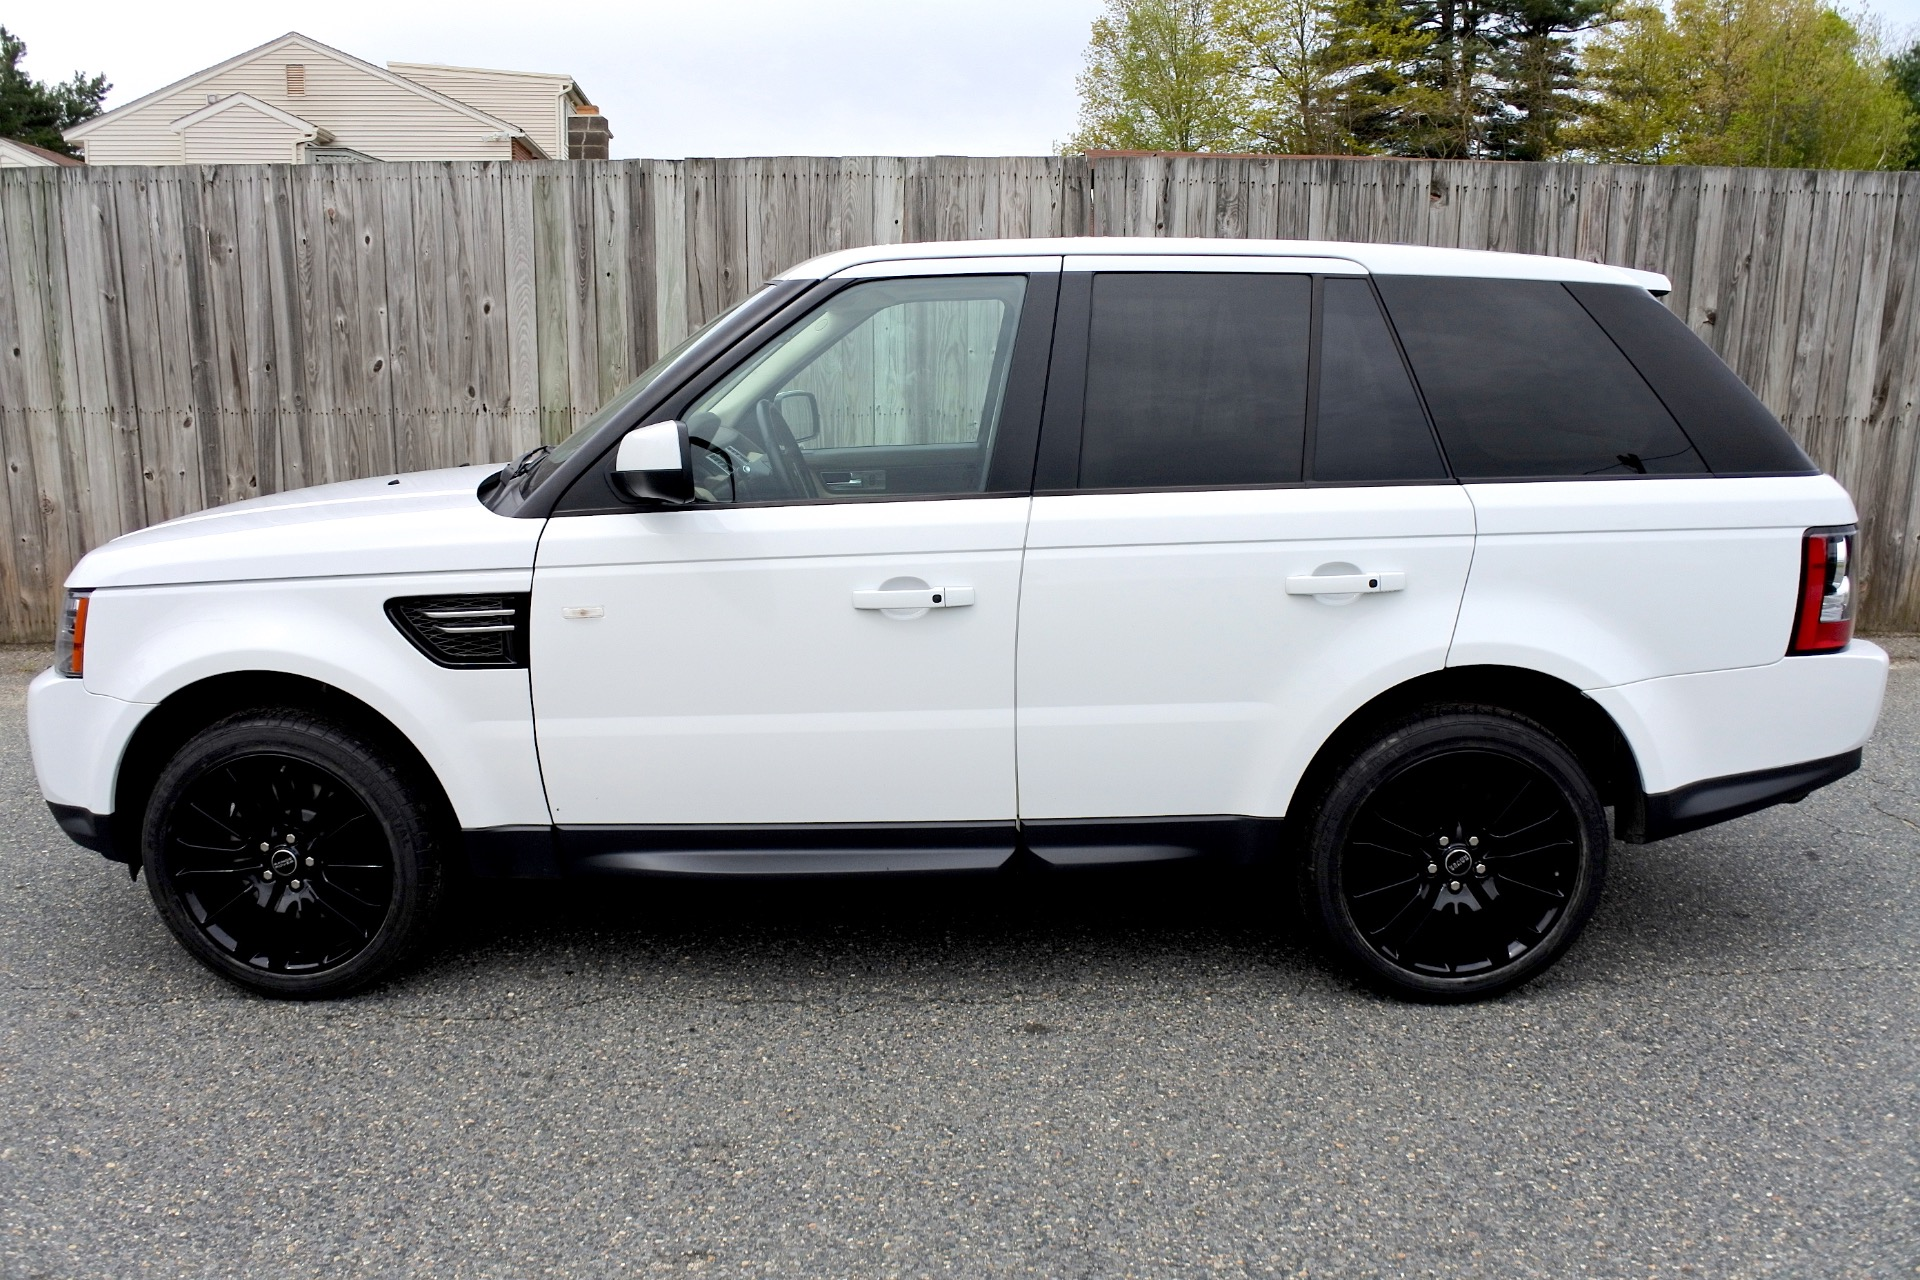 Used 2013 Land Rover Range Rover Sport HSE Used 2013 Land Rover Range Rover Sport HSE for sale  at Metro West Motorcars LLC in Shrewsbury MA 2